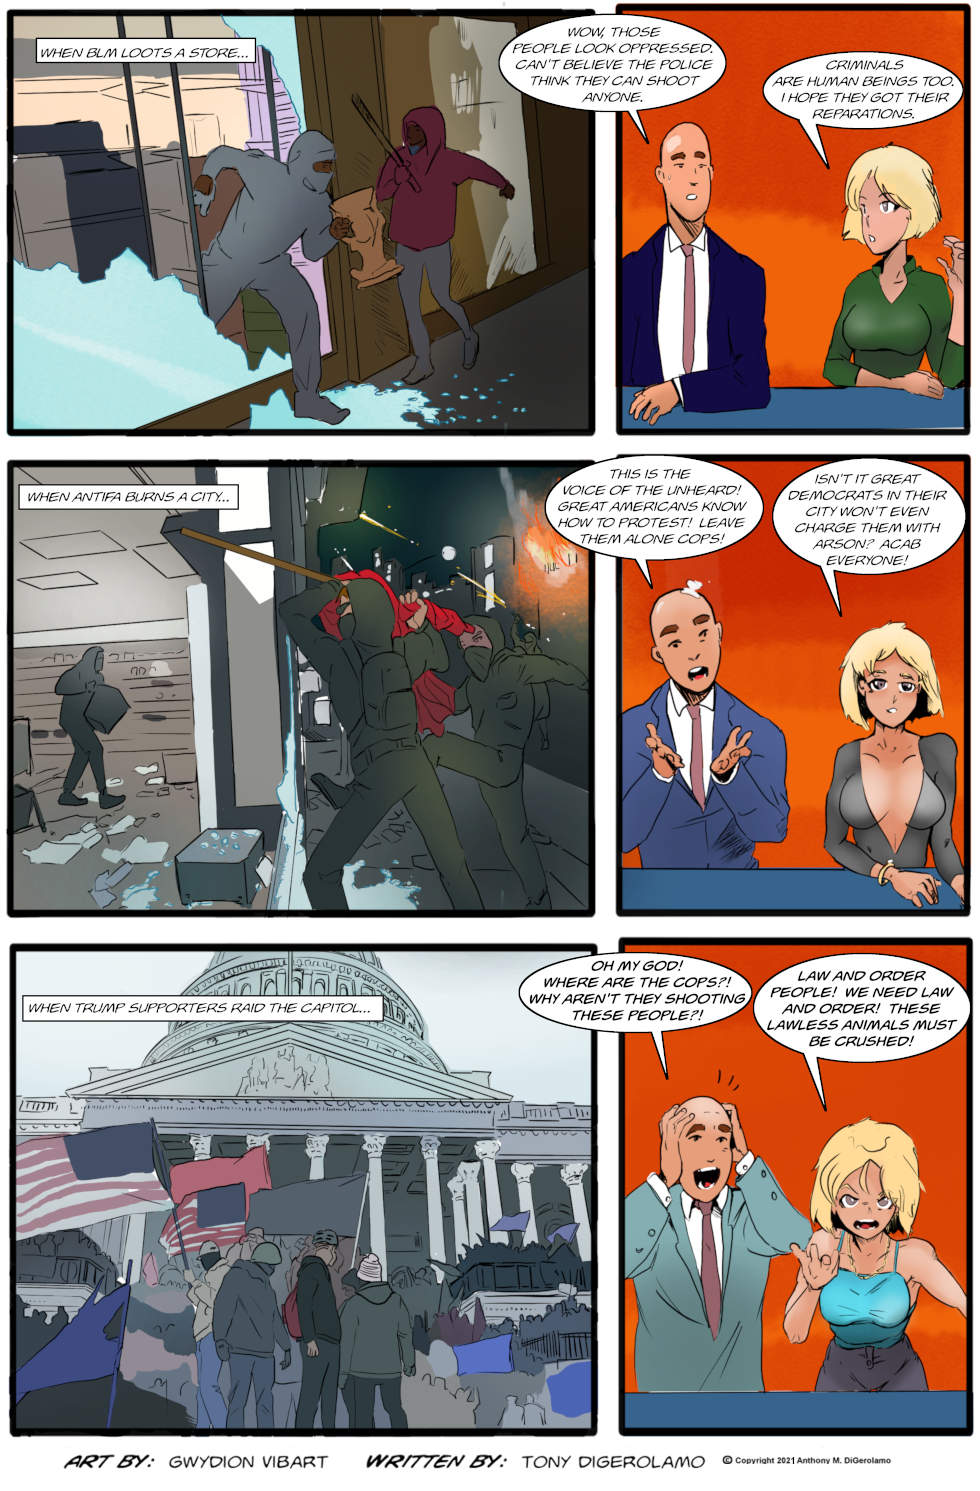 The Antiwar Comic:  One Man's Protester…